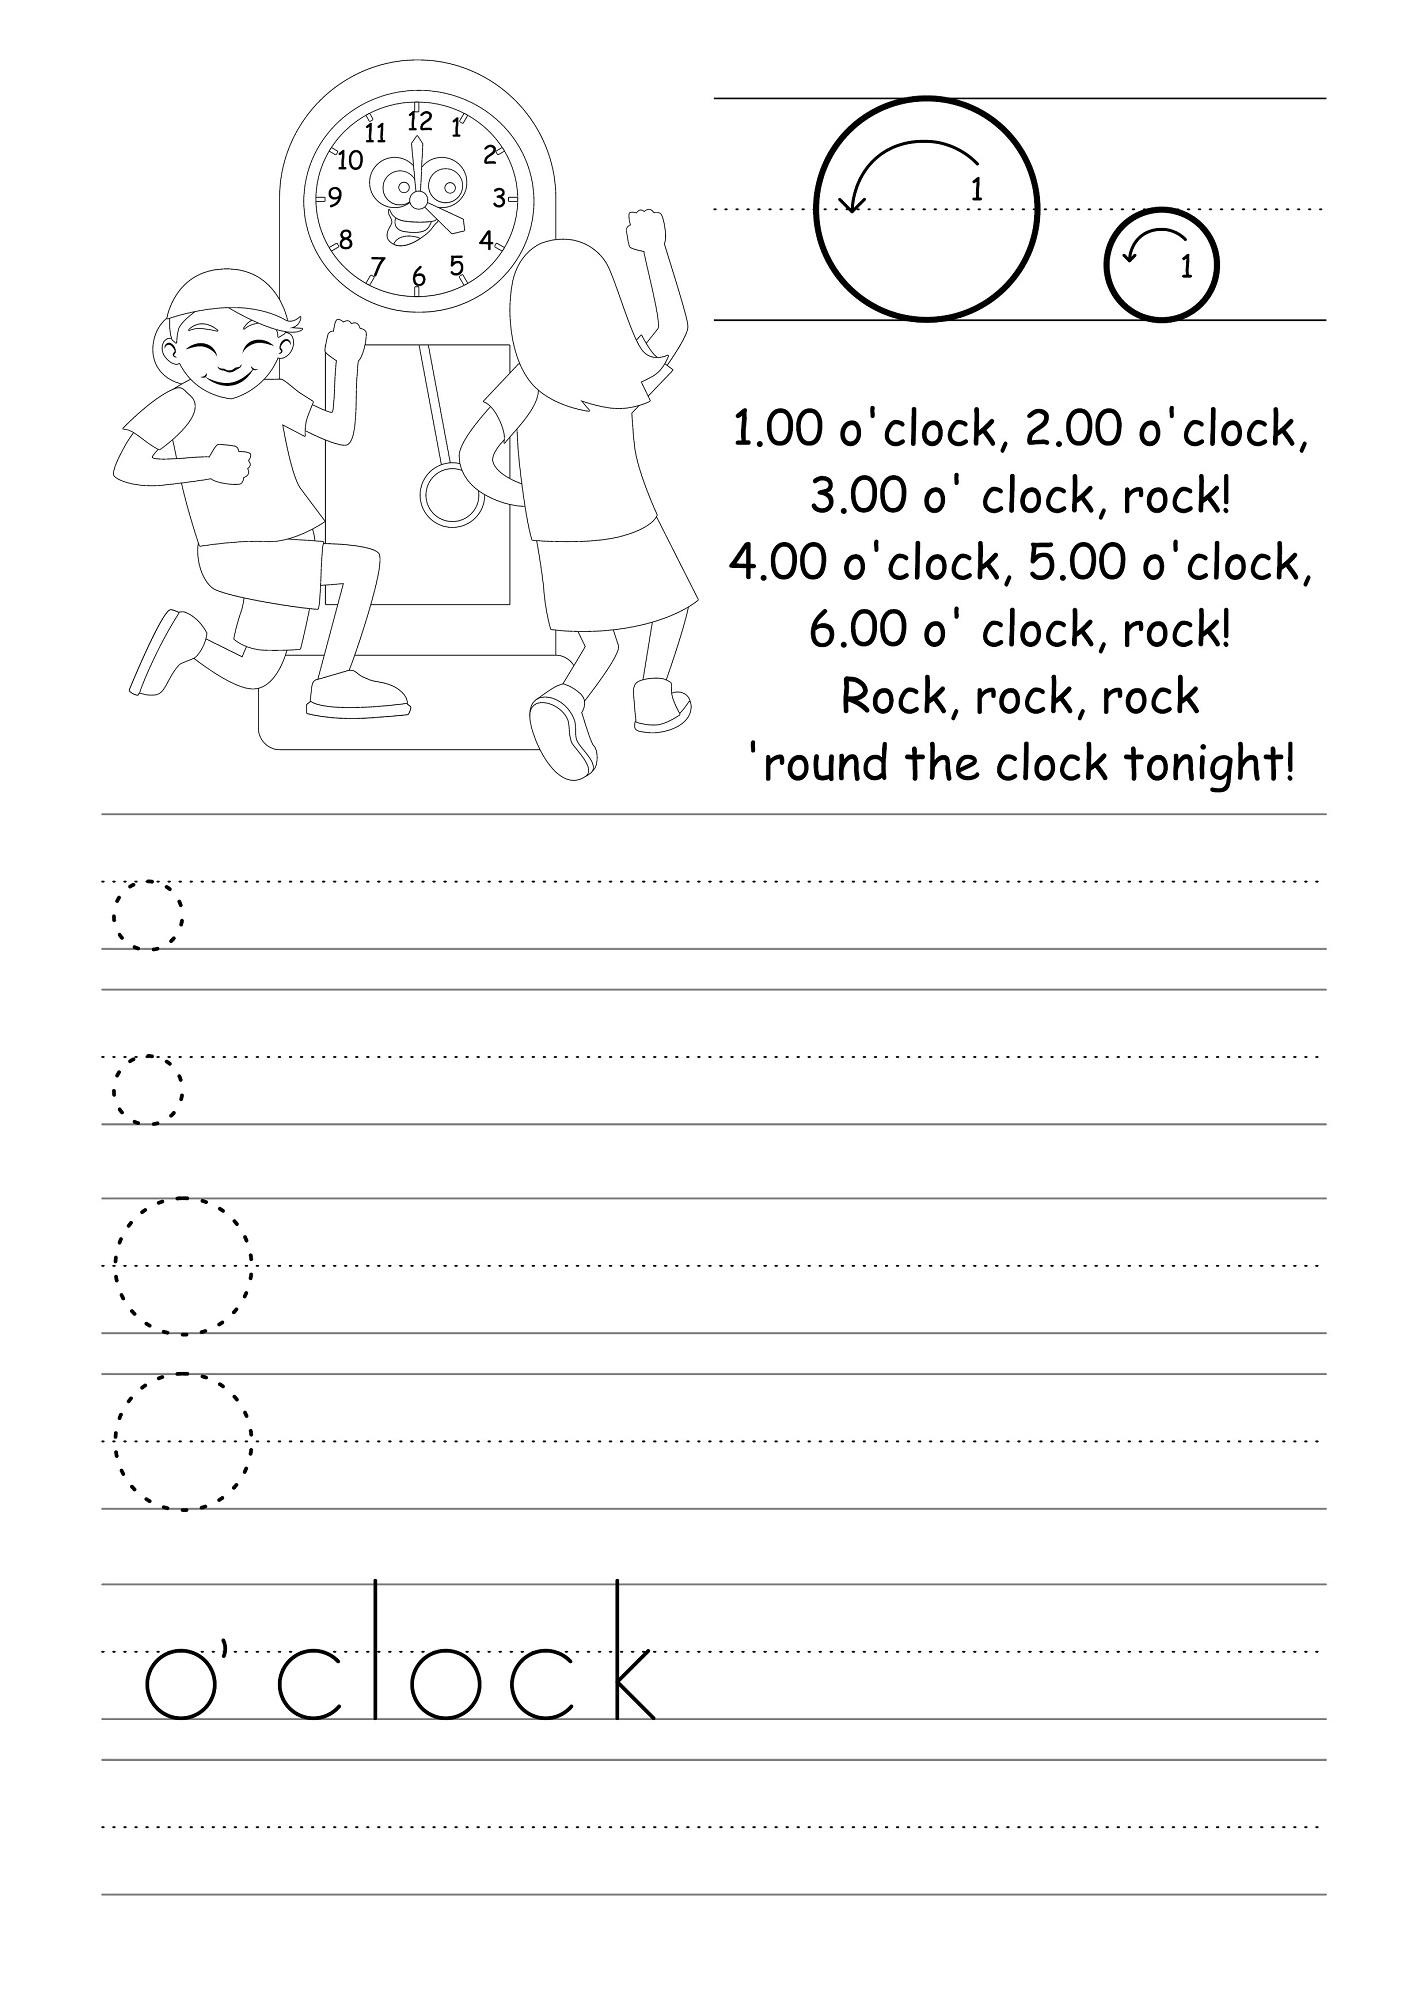 Worksheet About Letter O